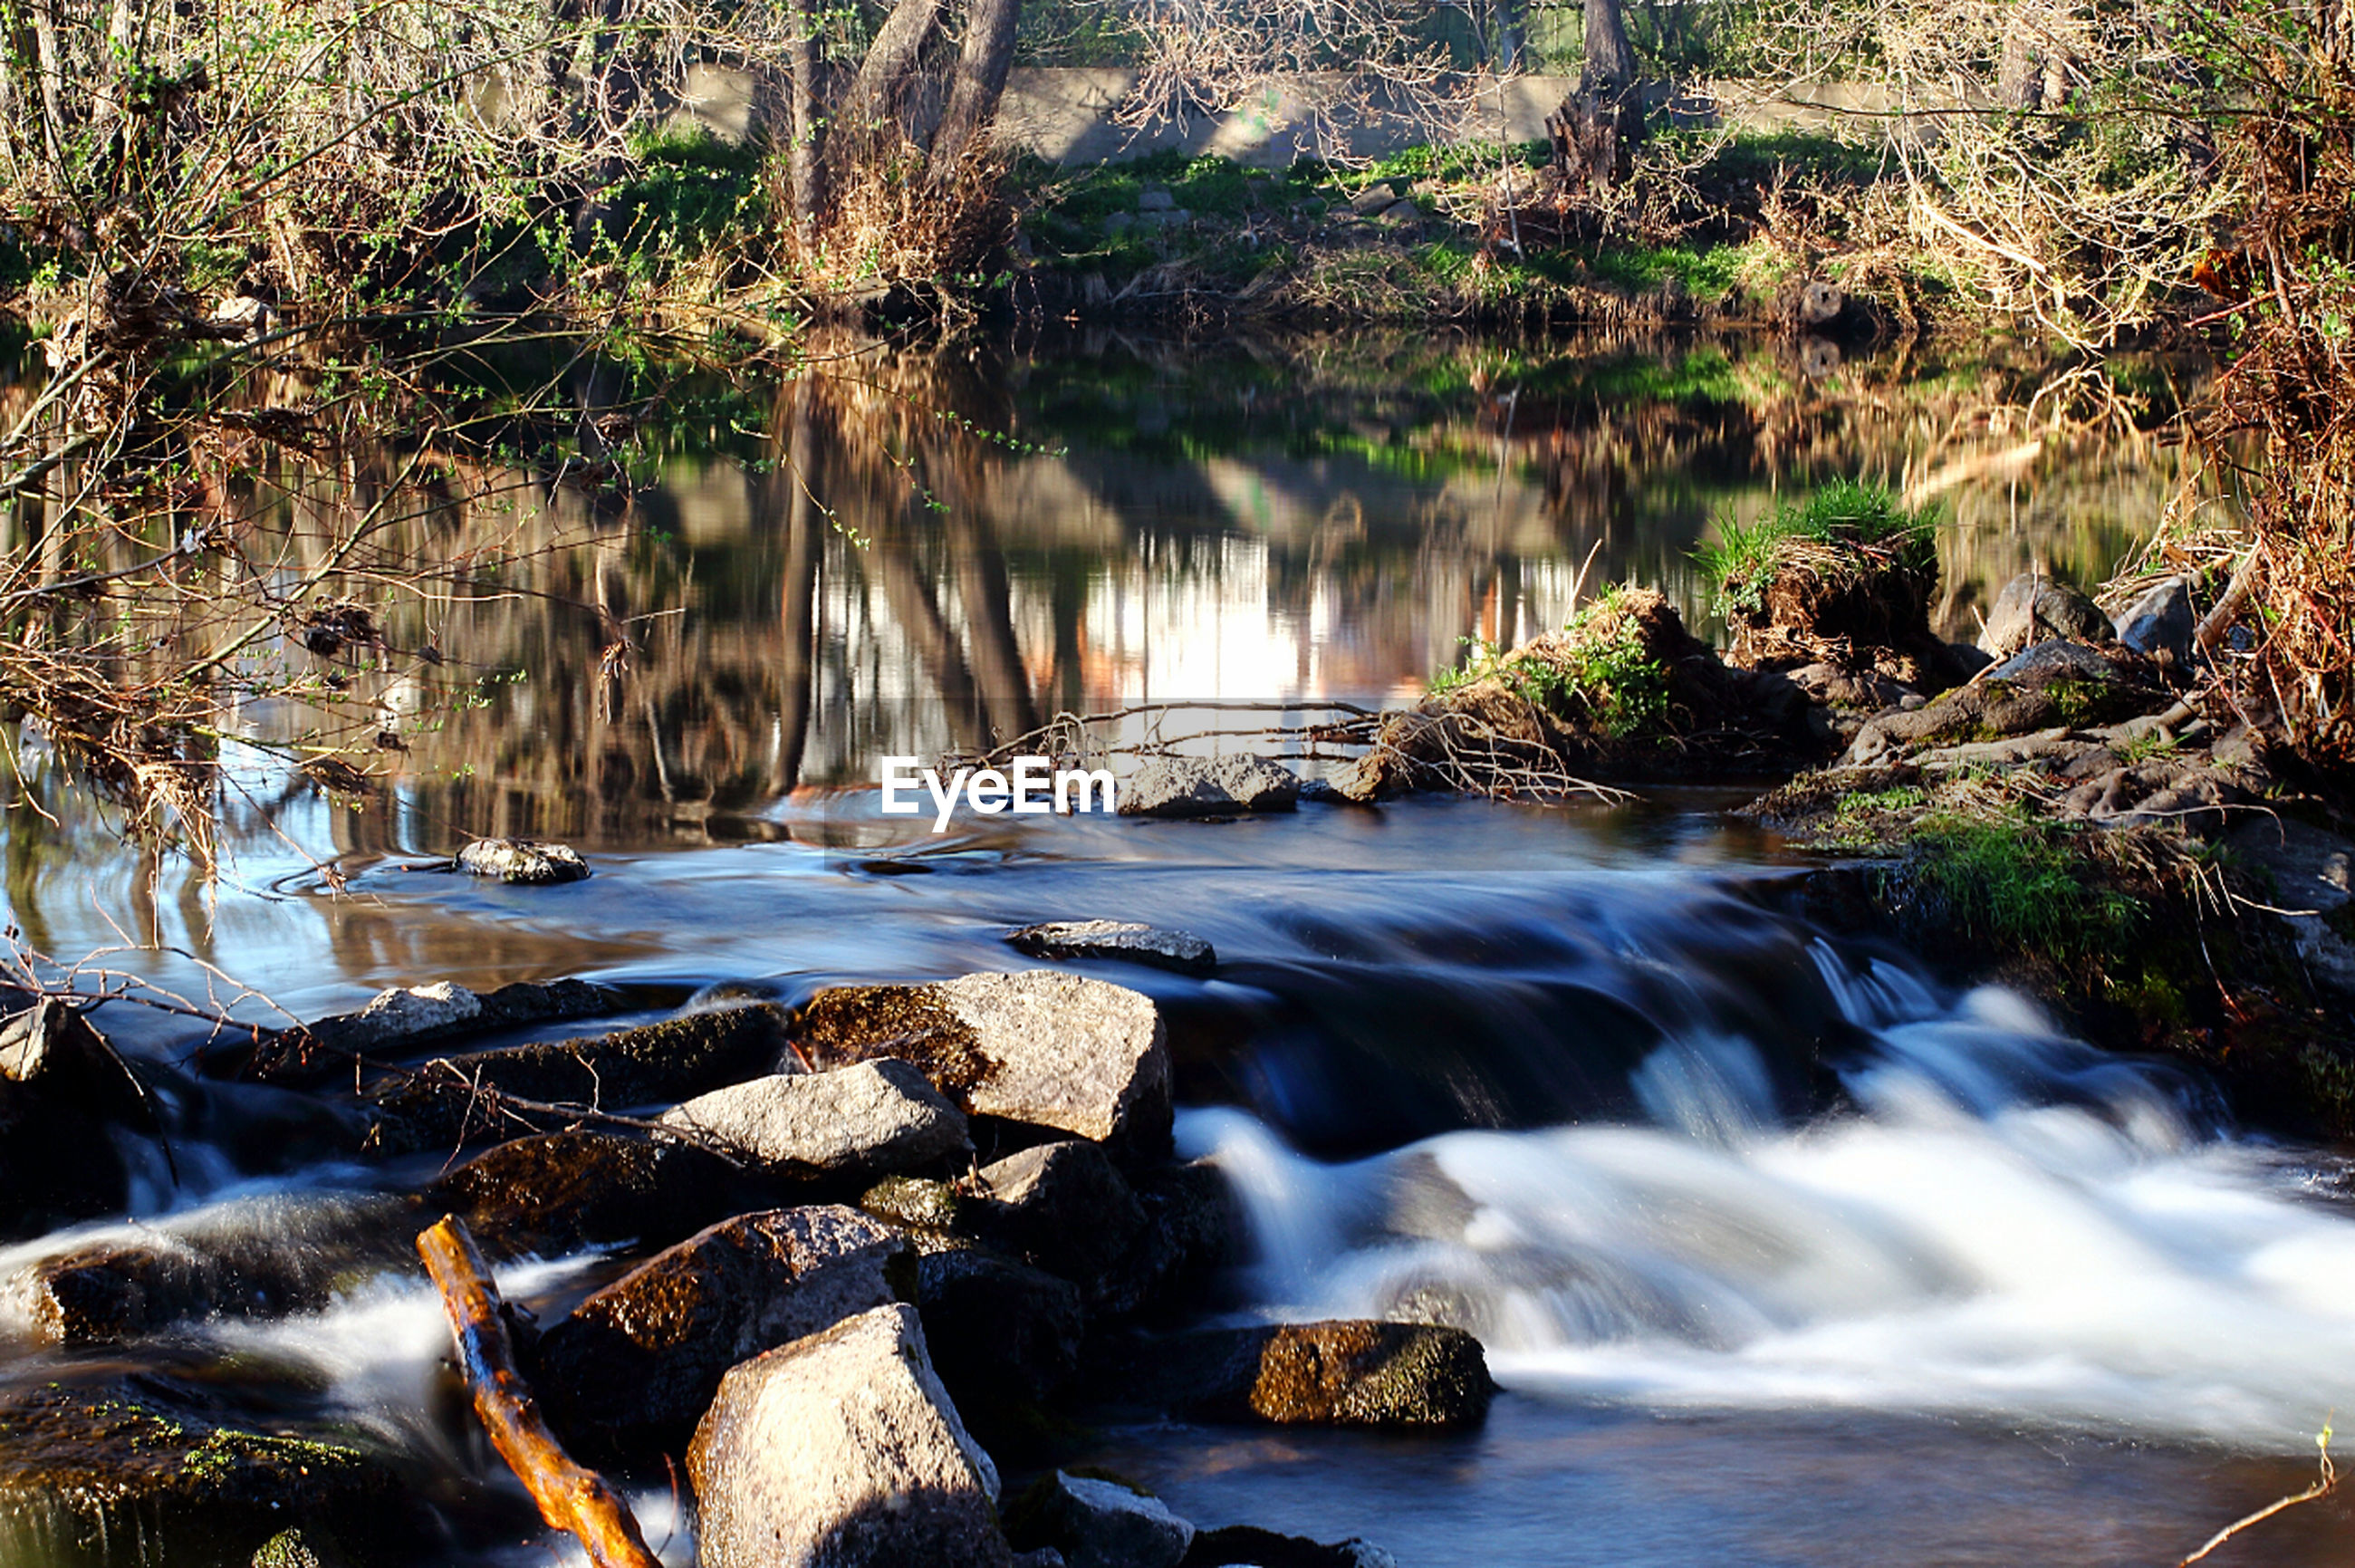 water, reflection, nature, tree, no people, lake, motion, stream - flowing water, beauty in nature, outdoors, waterfall, close-up, day, sky, freshness